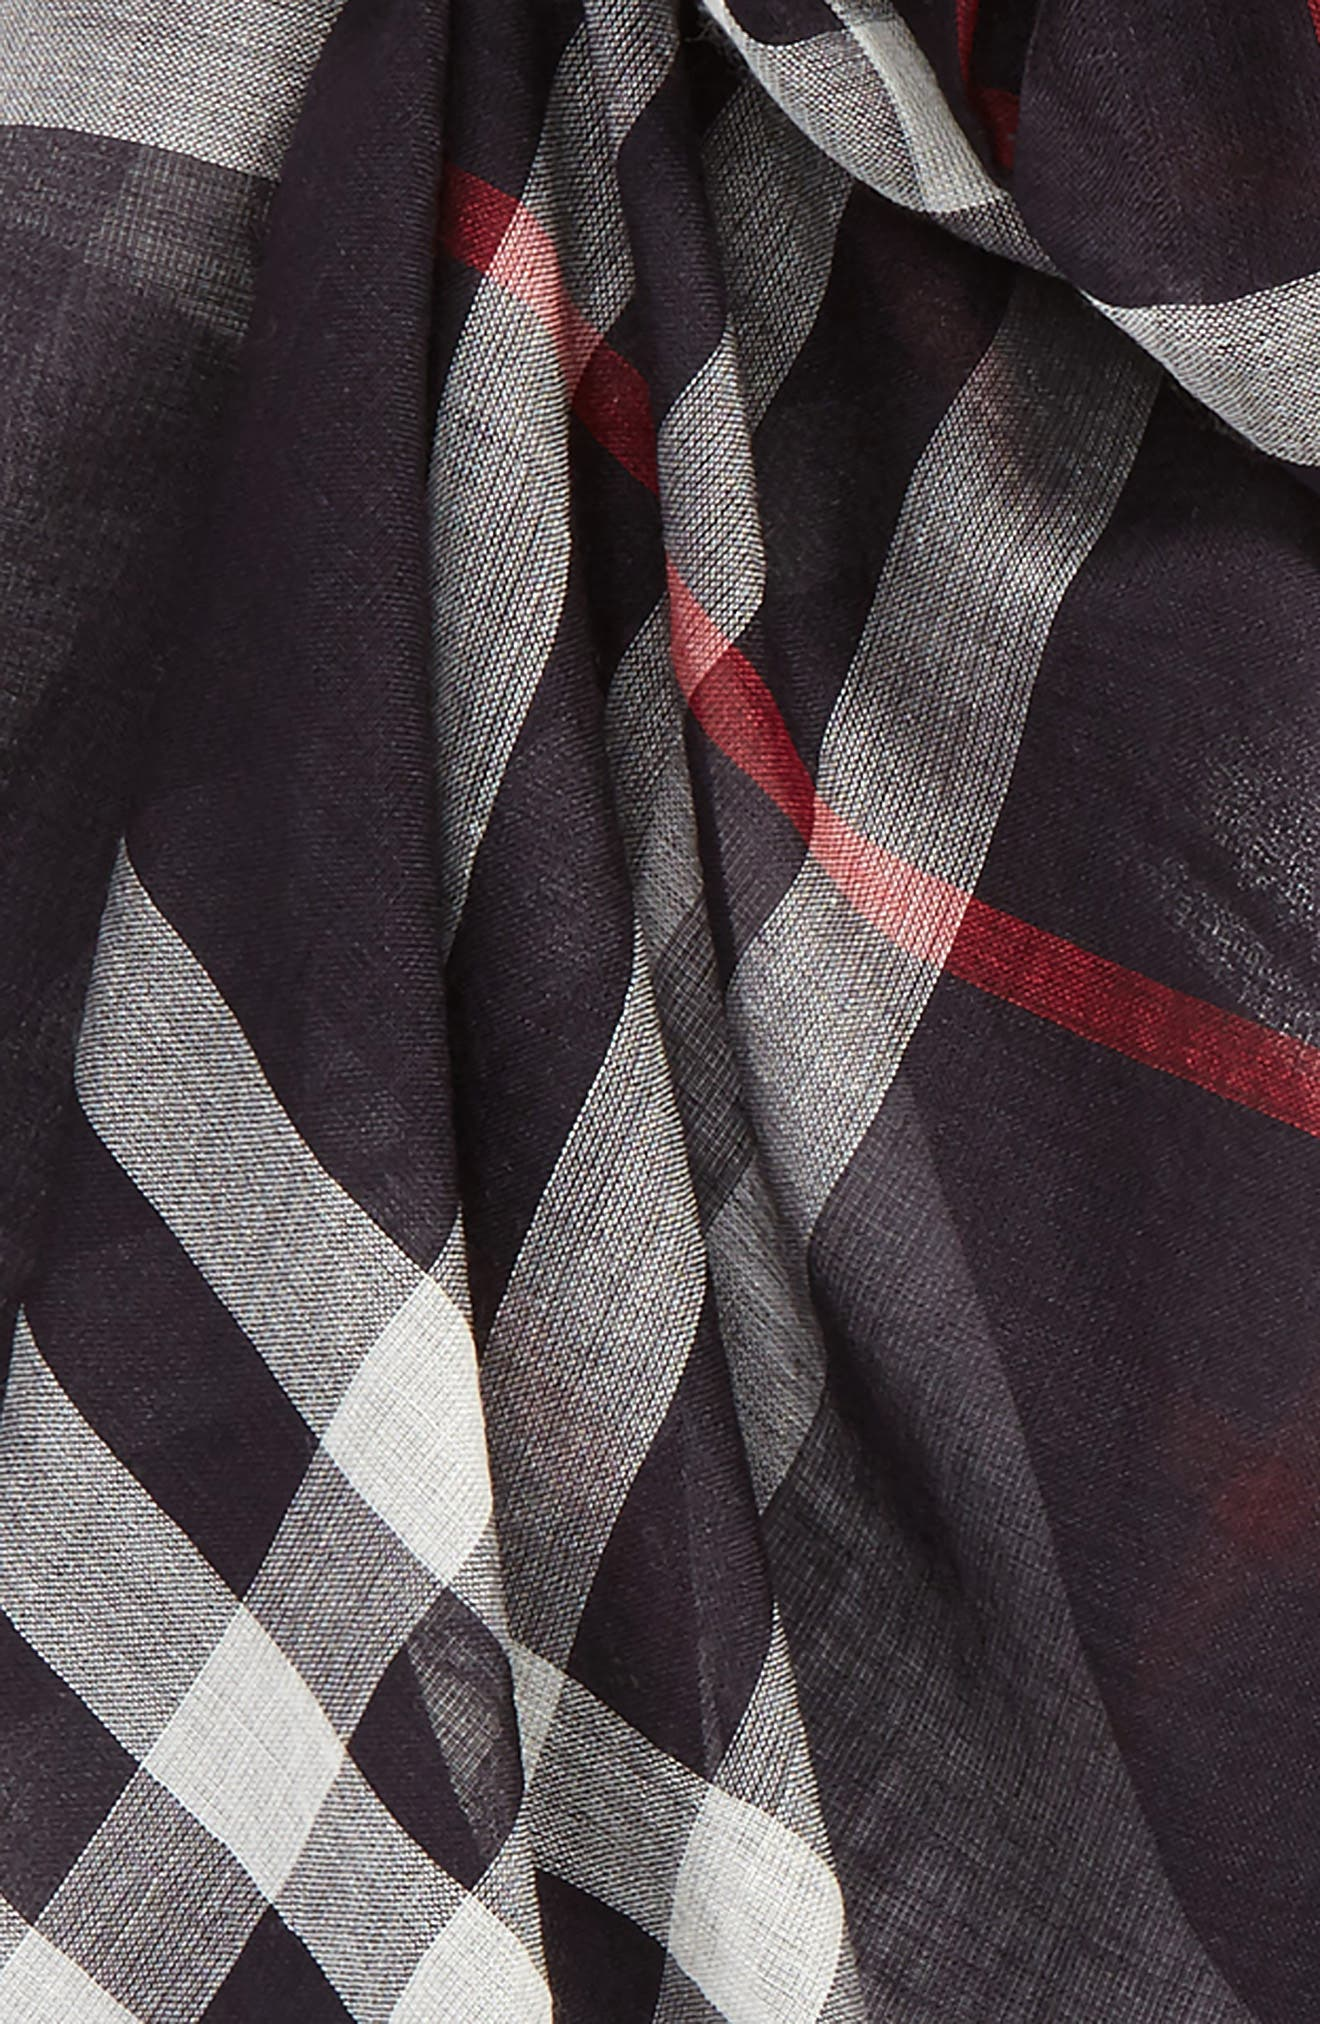 Giant Check Print Wool & Silk Scarf,                             Alternate thumbnail 144, color,